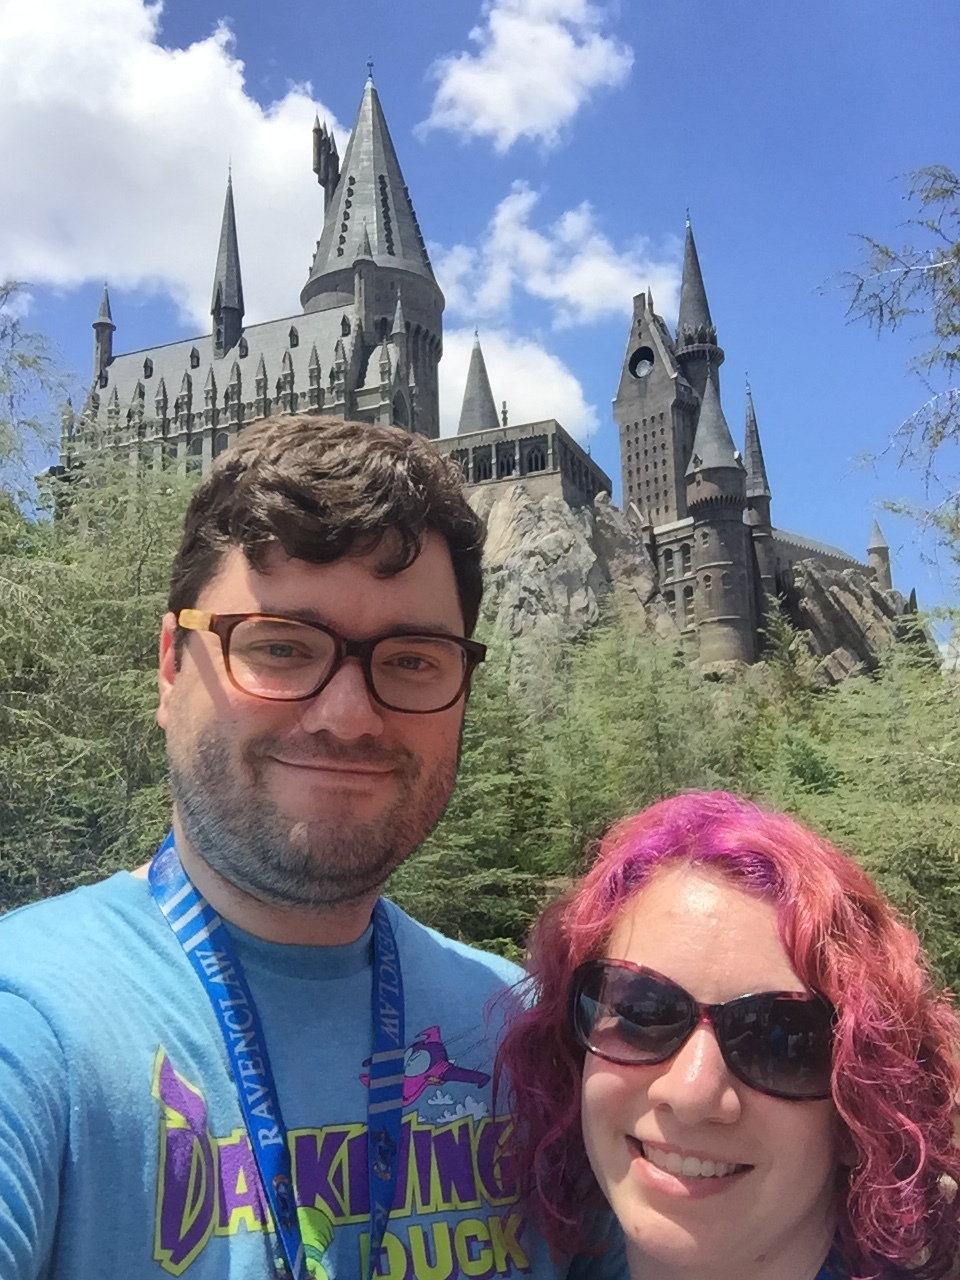 Obligatory selfie in front of Hogwarts.